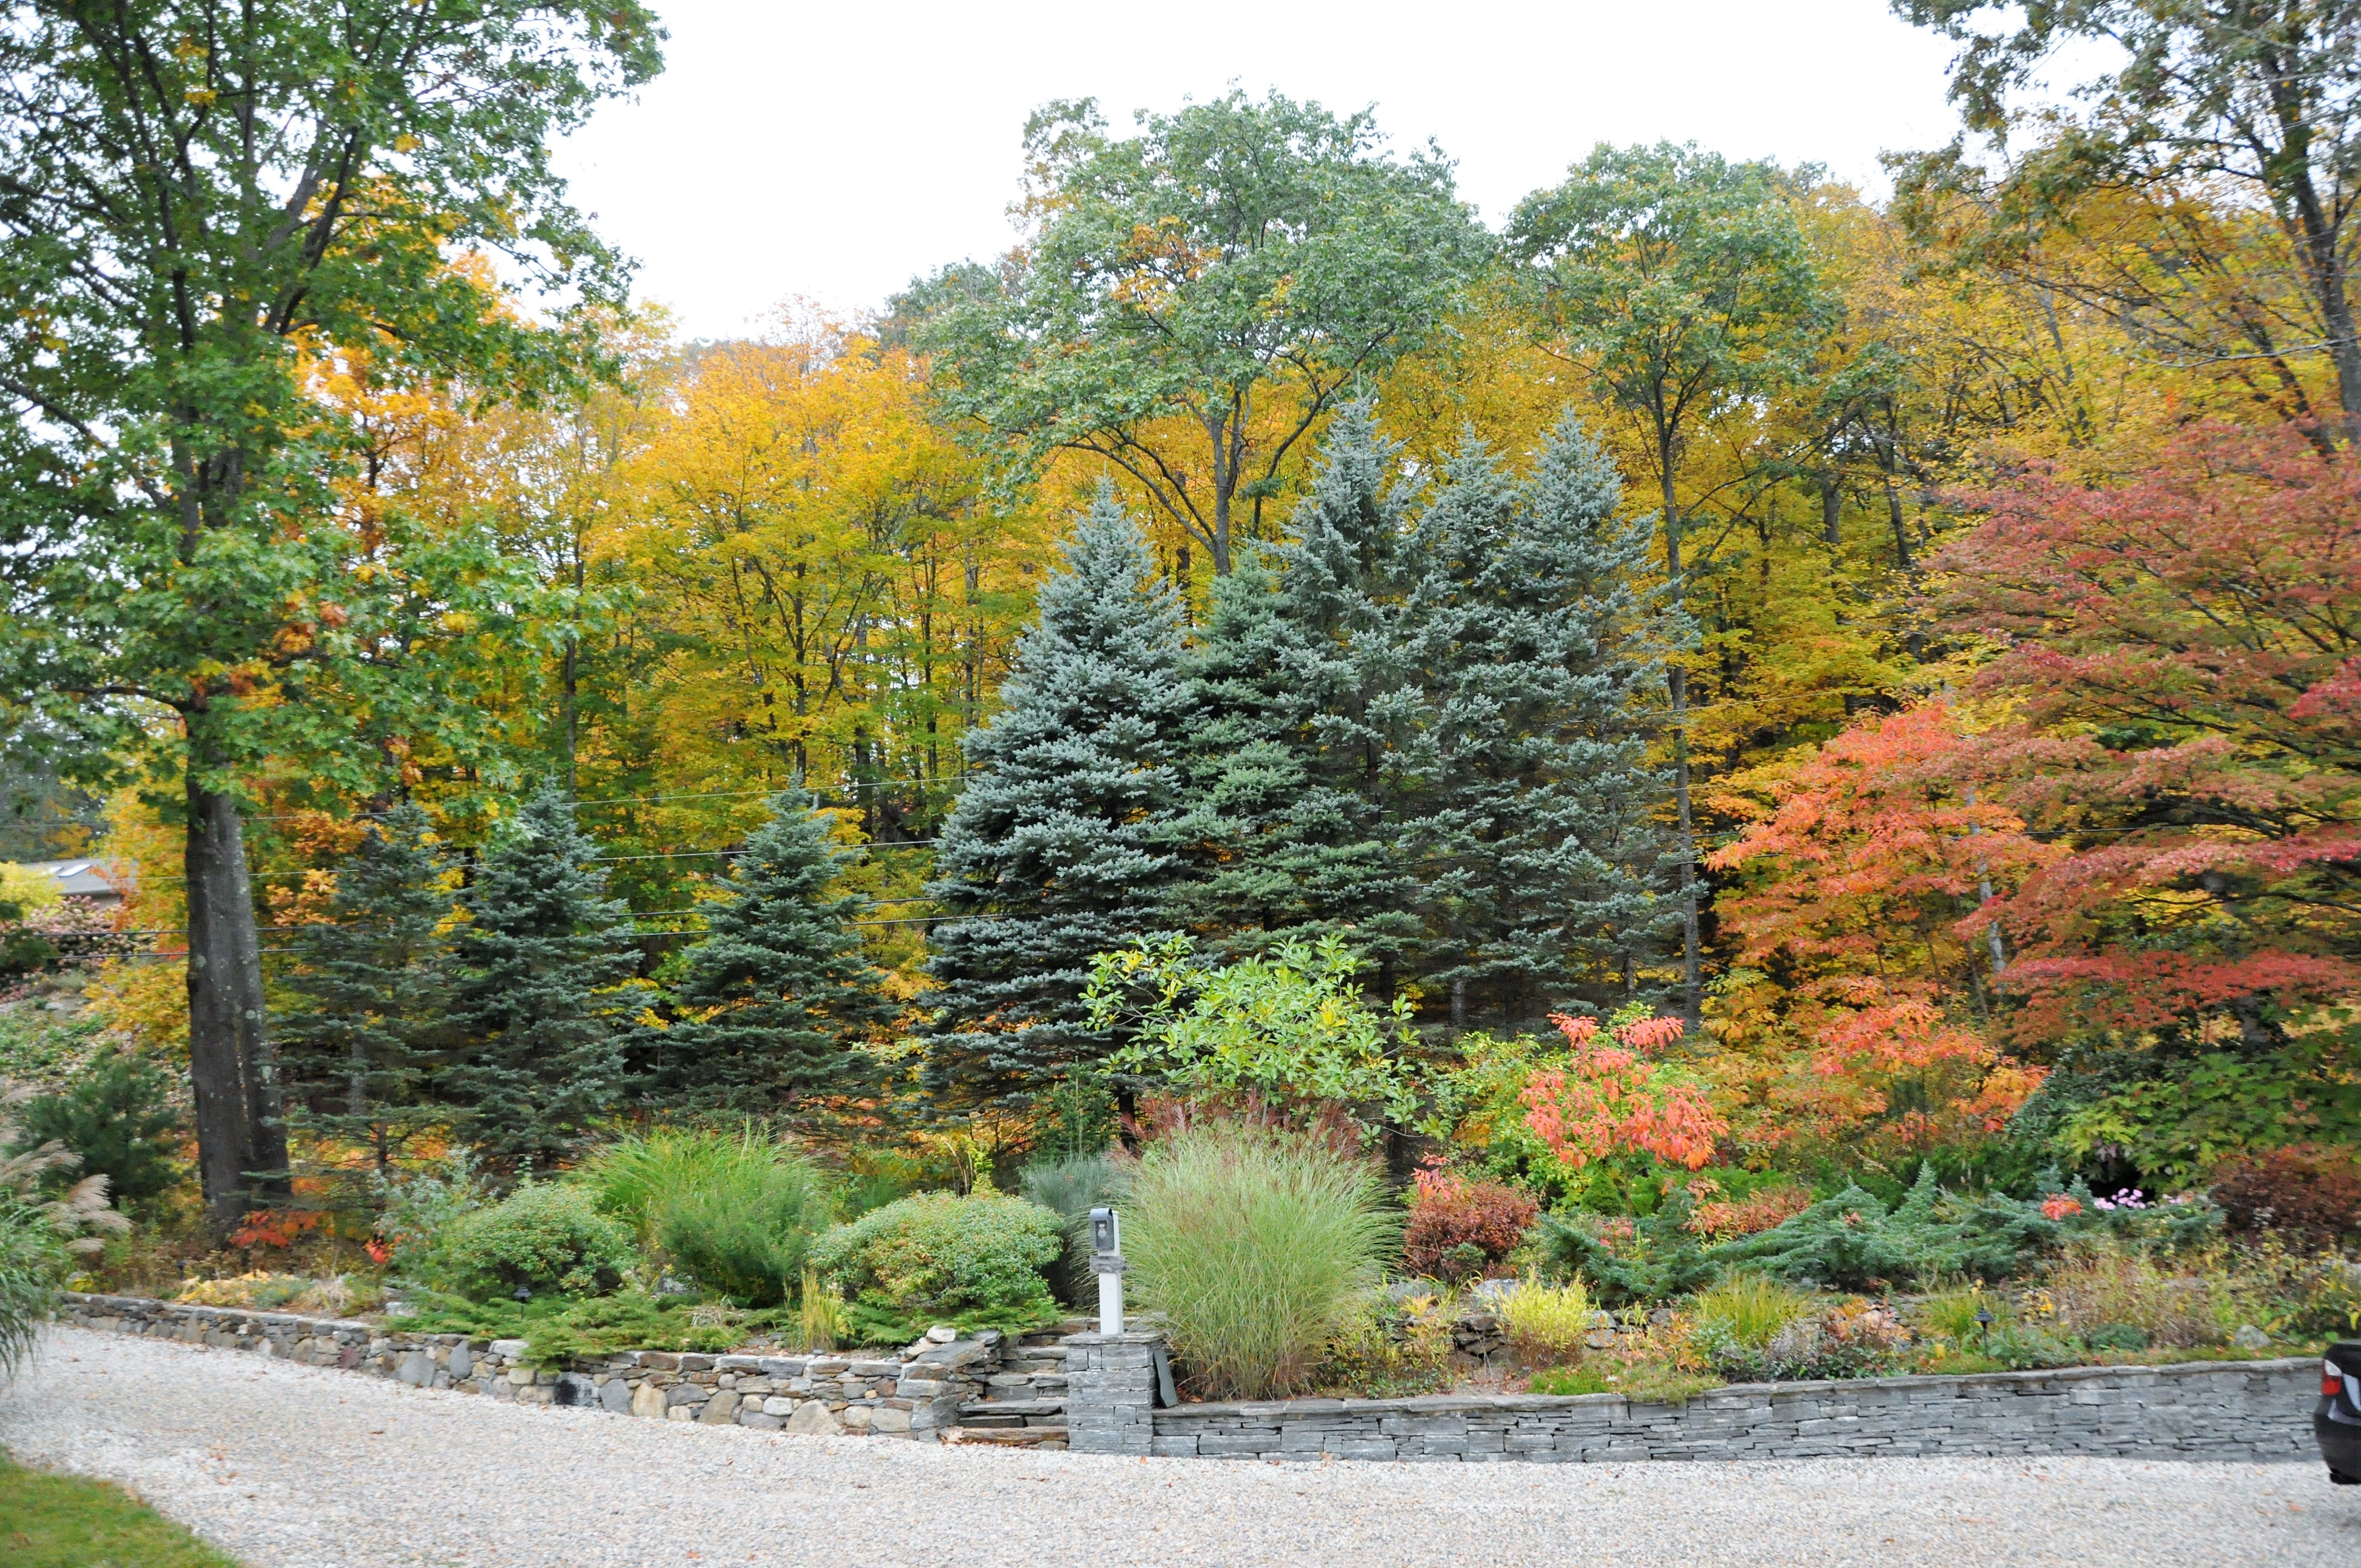 Beautiful fall landscaping, professional stone walls, ornamental trees. 208 Westledge Rd, West Simsbury, CT